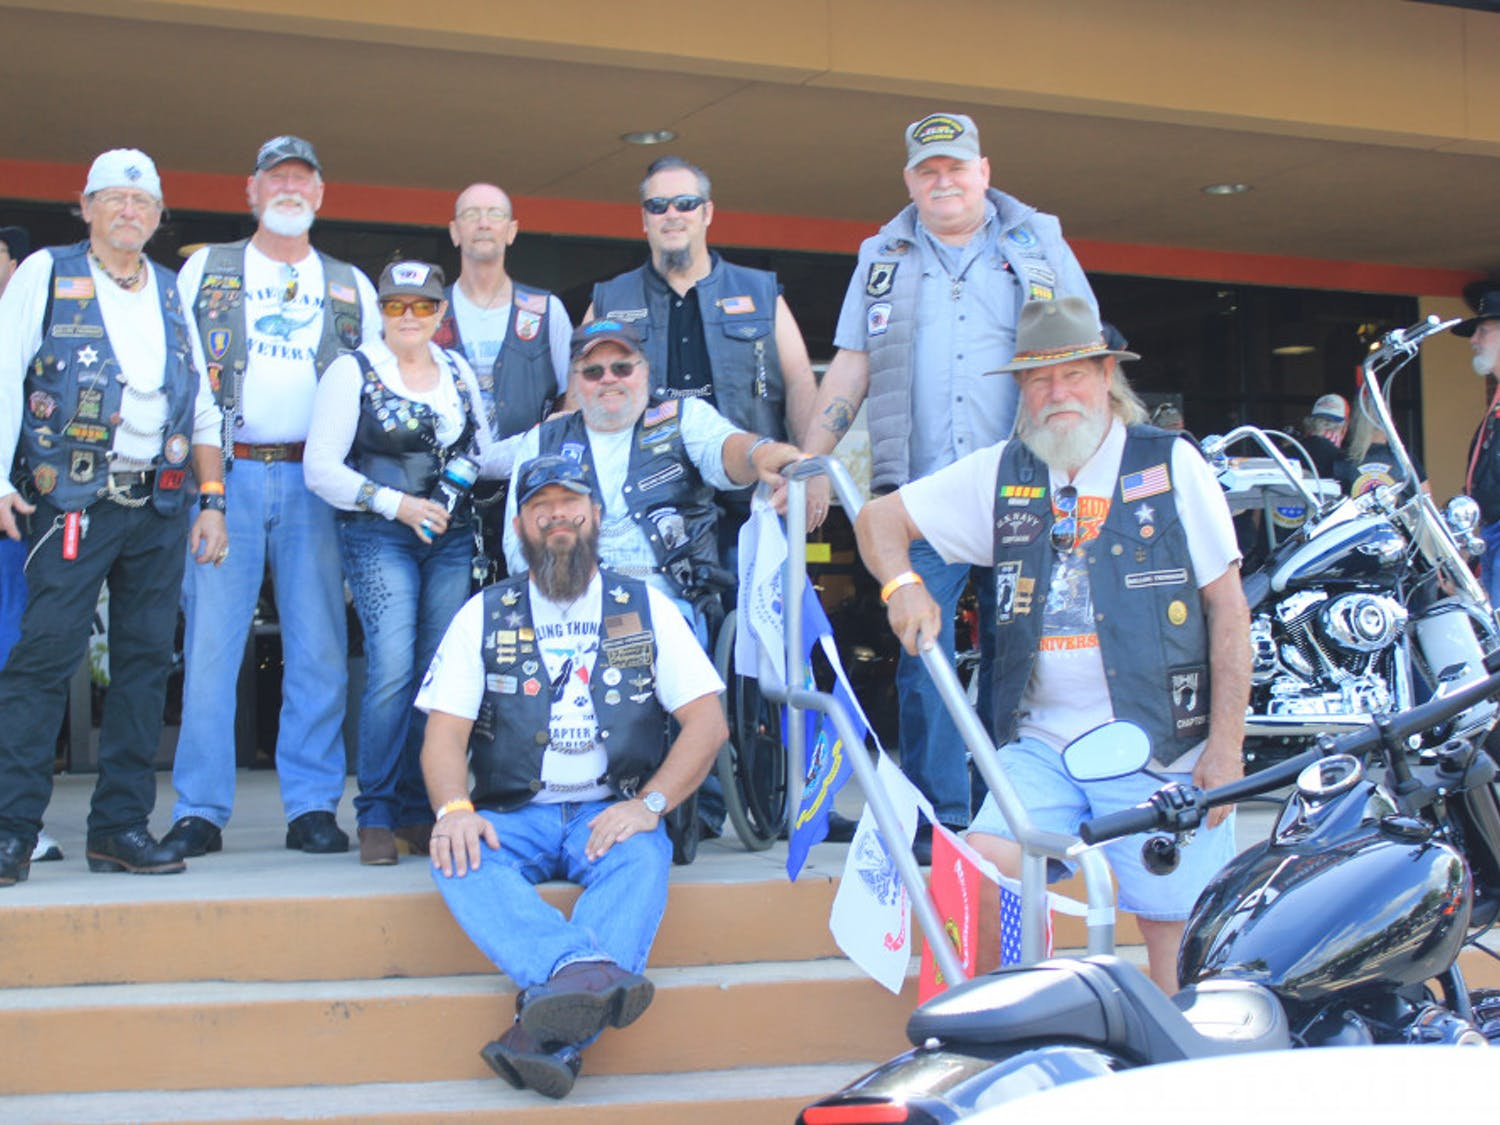 Members of Rolling Thunder pose for a group photograph outside of the Gainesville Harley-Davidson dealership.